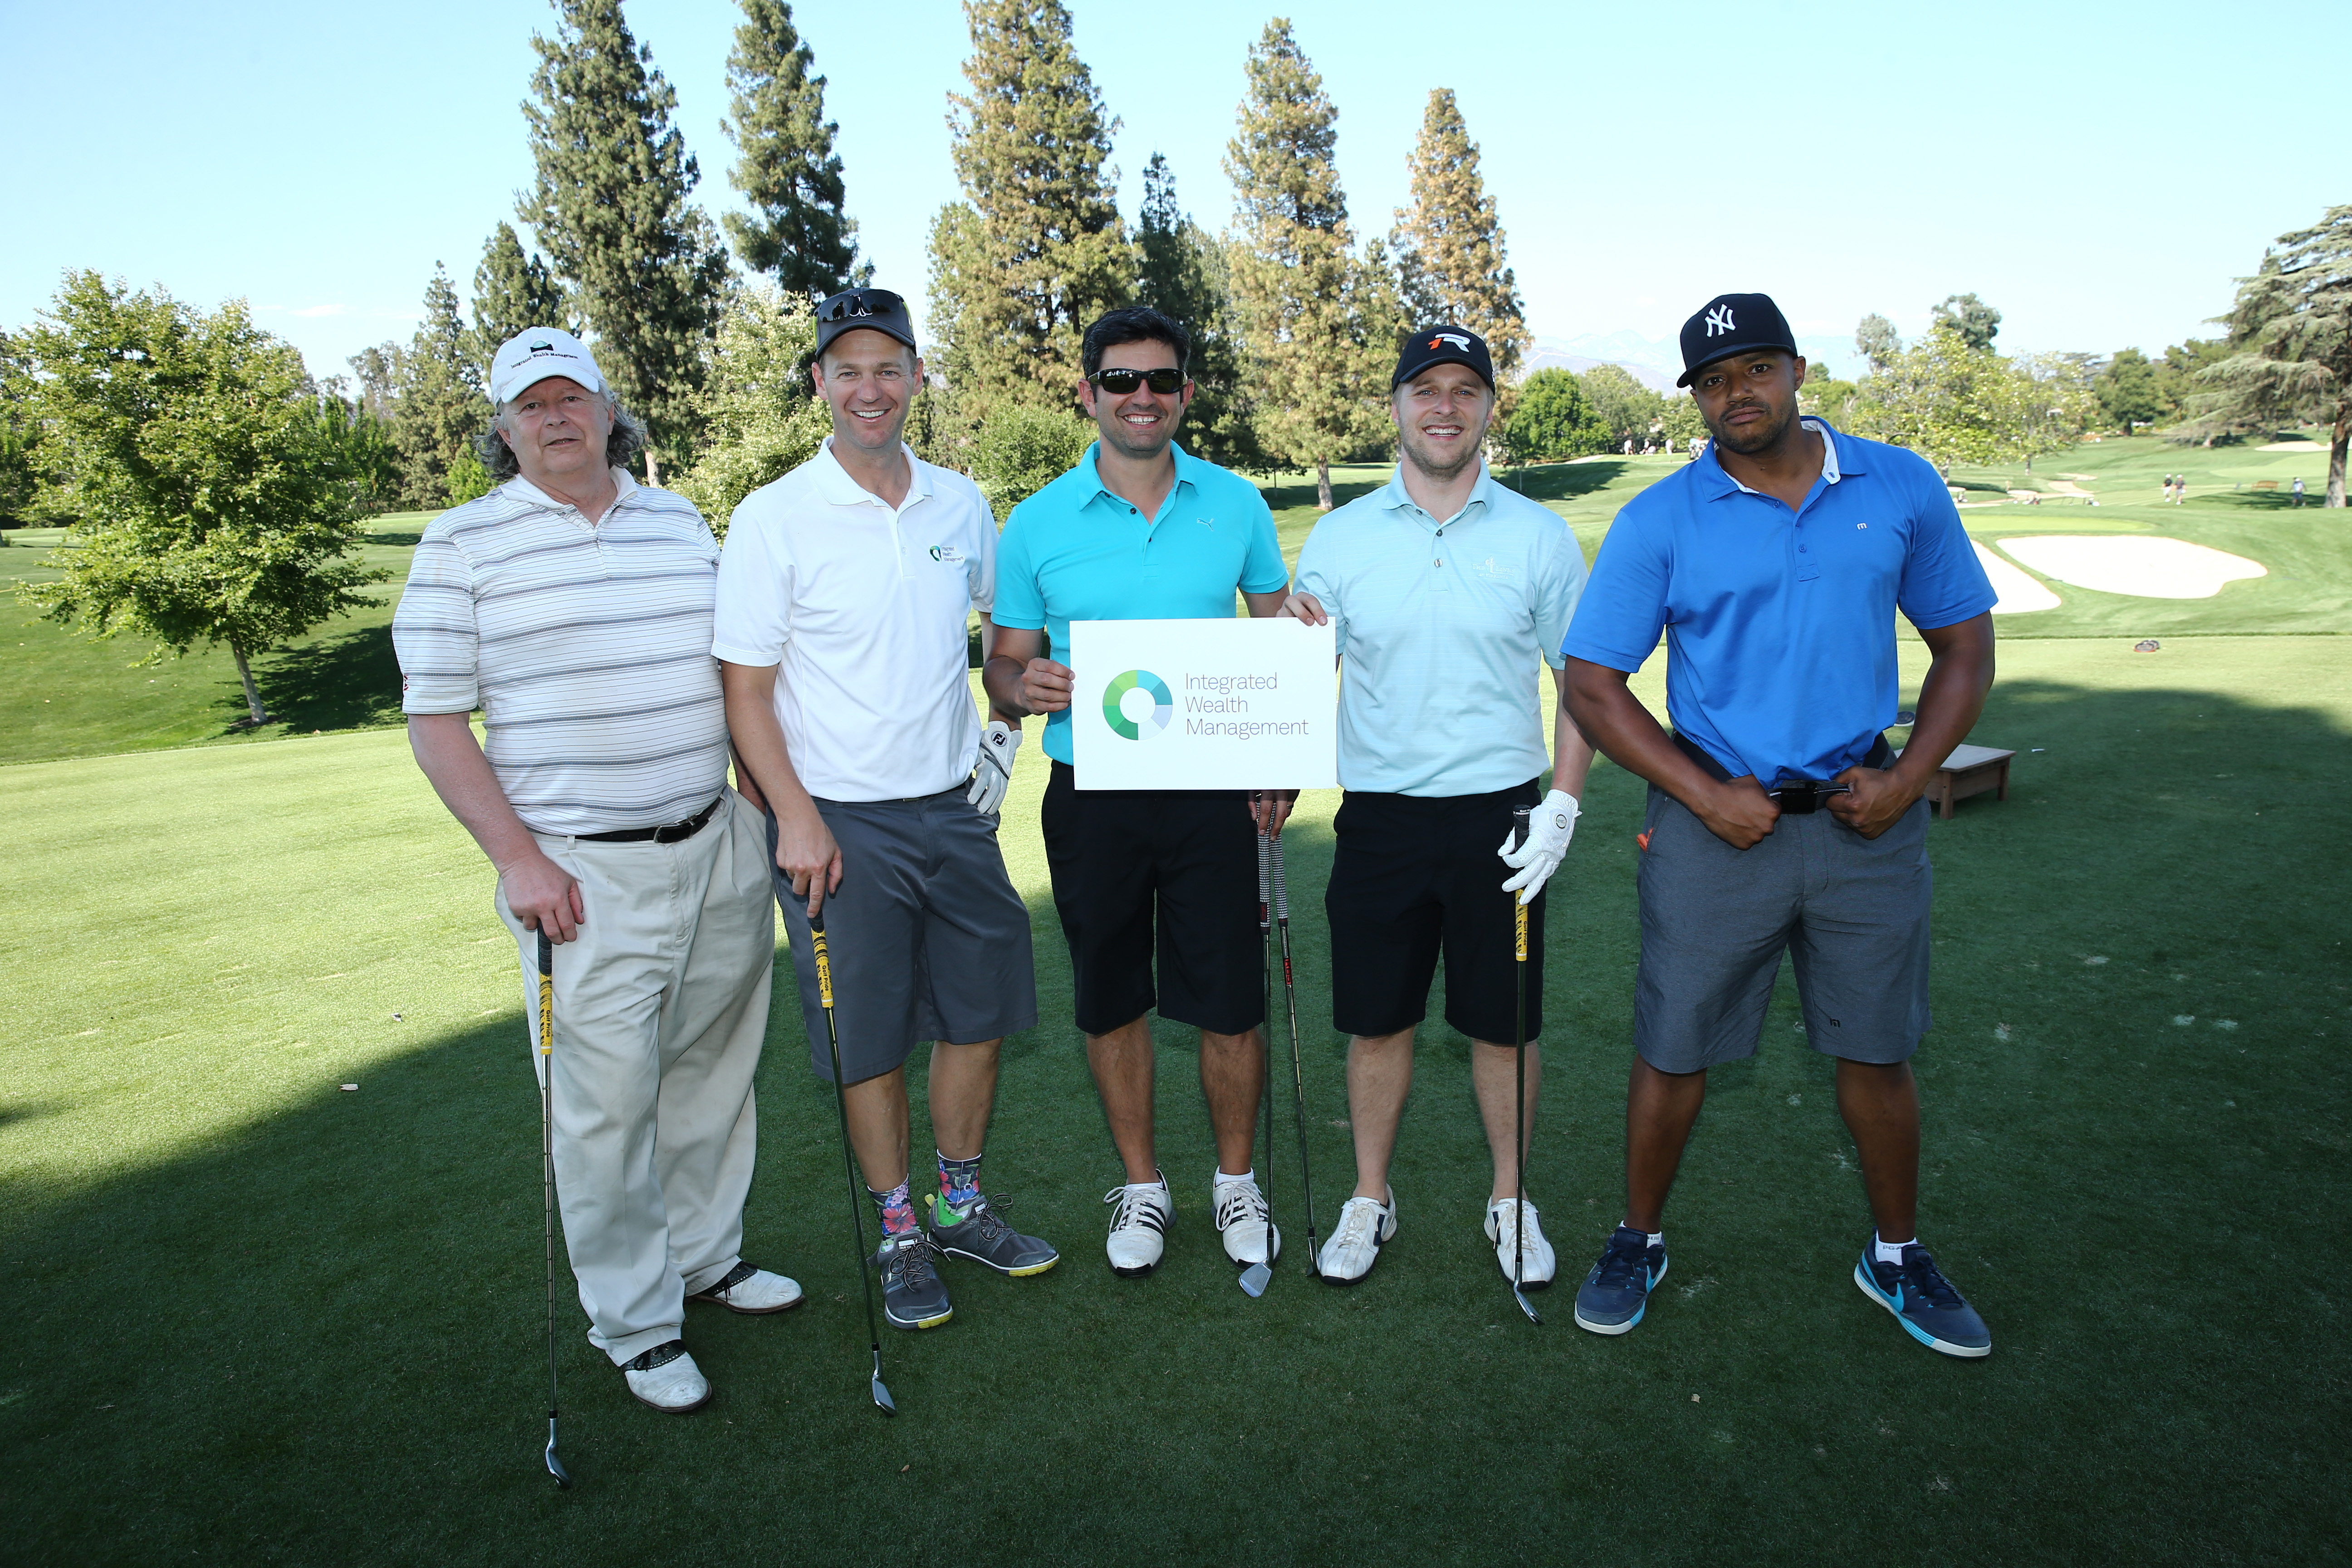 Paul Ventura, Dave Thatcher, Cort Green, Maclain Nelson and Donald Faison of Team Integrated Wealth Management play at the Screen Actors Guild Foundation's 6th Annual Los Angeles Golf Classic on June 8, 2015 in Burbank, California. (Photo by Mark Davis/Getty Images for The Screen Actors Guild Foundation)